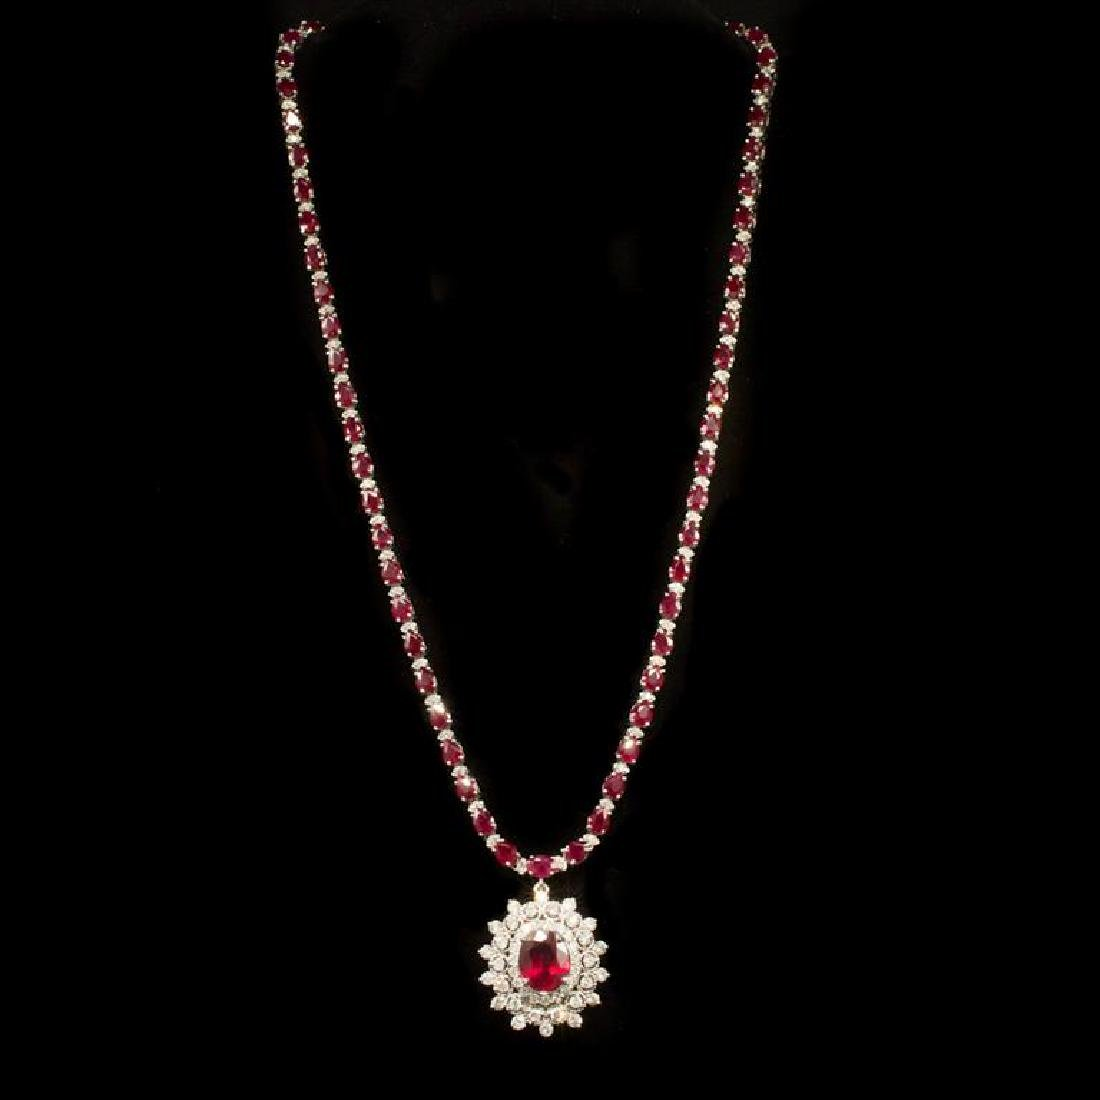 14k Gold 27.74ct Ruby 3.21ct Diamond Necklace - 2